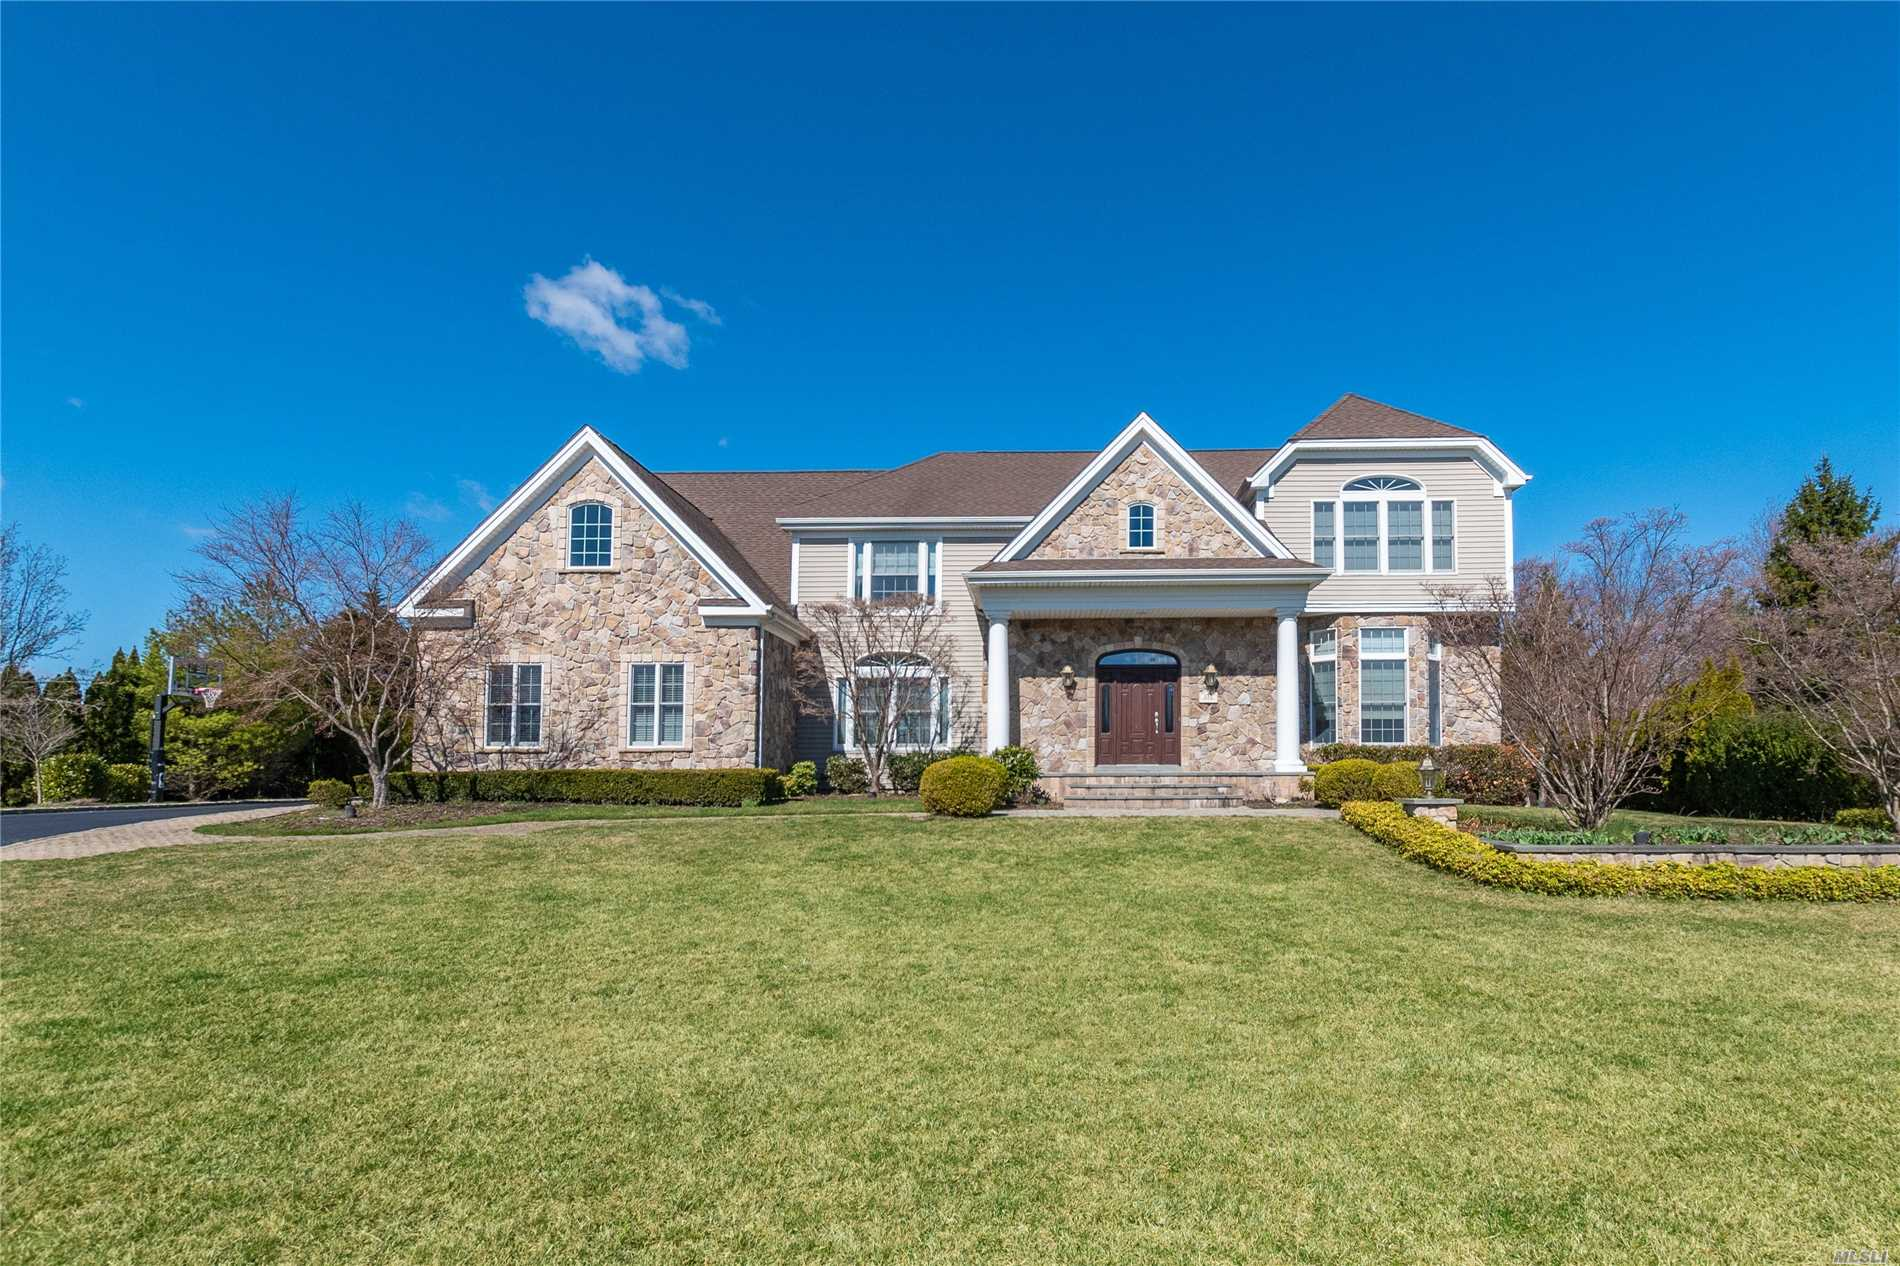 Shows Like A Model Home!! Elegant 5, 000 Sq Ft Impeccably Maintained Home! This 5 Bed/3.5 Bath Astor Model Has Incredible Detail thruout. Two Story Entrance Foyer, Beautiful Custom Kitchen w/ High End Appliances opened to the Great Rm w/ Gas Fplce, FLR, FDR, Mster Bdrm Suite w/ lots of Closets, Finished Over-sized Bonus Rm, Enormous Basement w/ 10 ft Ceilings, Pretty Paved Patio w/ Outdoor Fplce, Kitchen & Prvate Yard, 3 Car Garage, Professionally Painted. Turn Key. Taxes being grieved